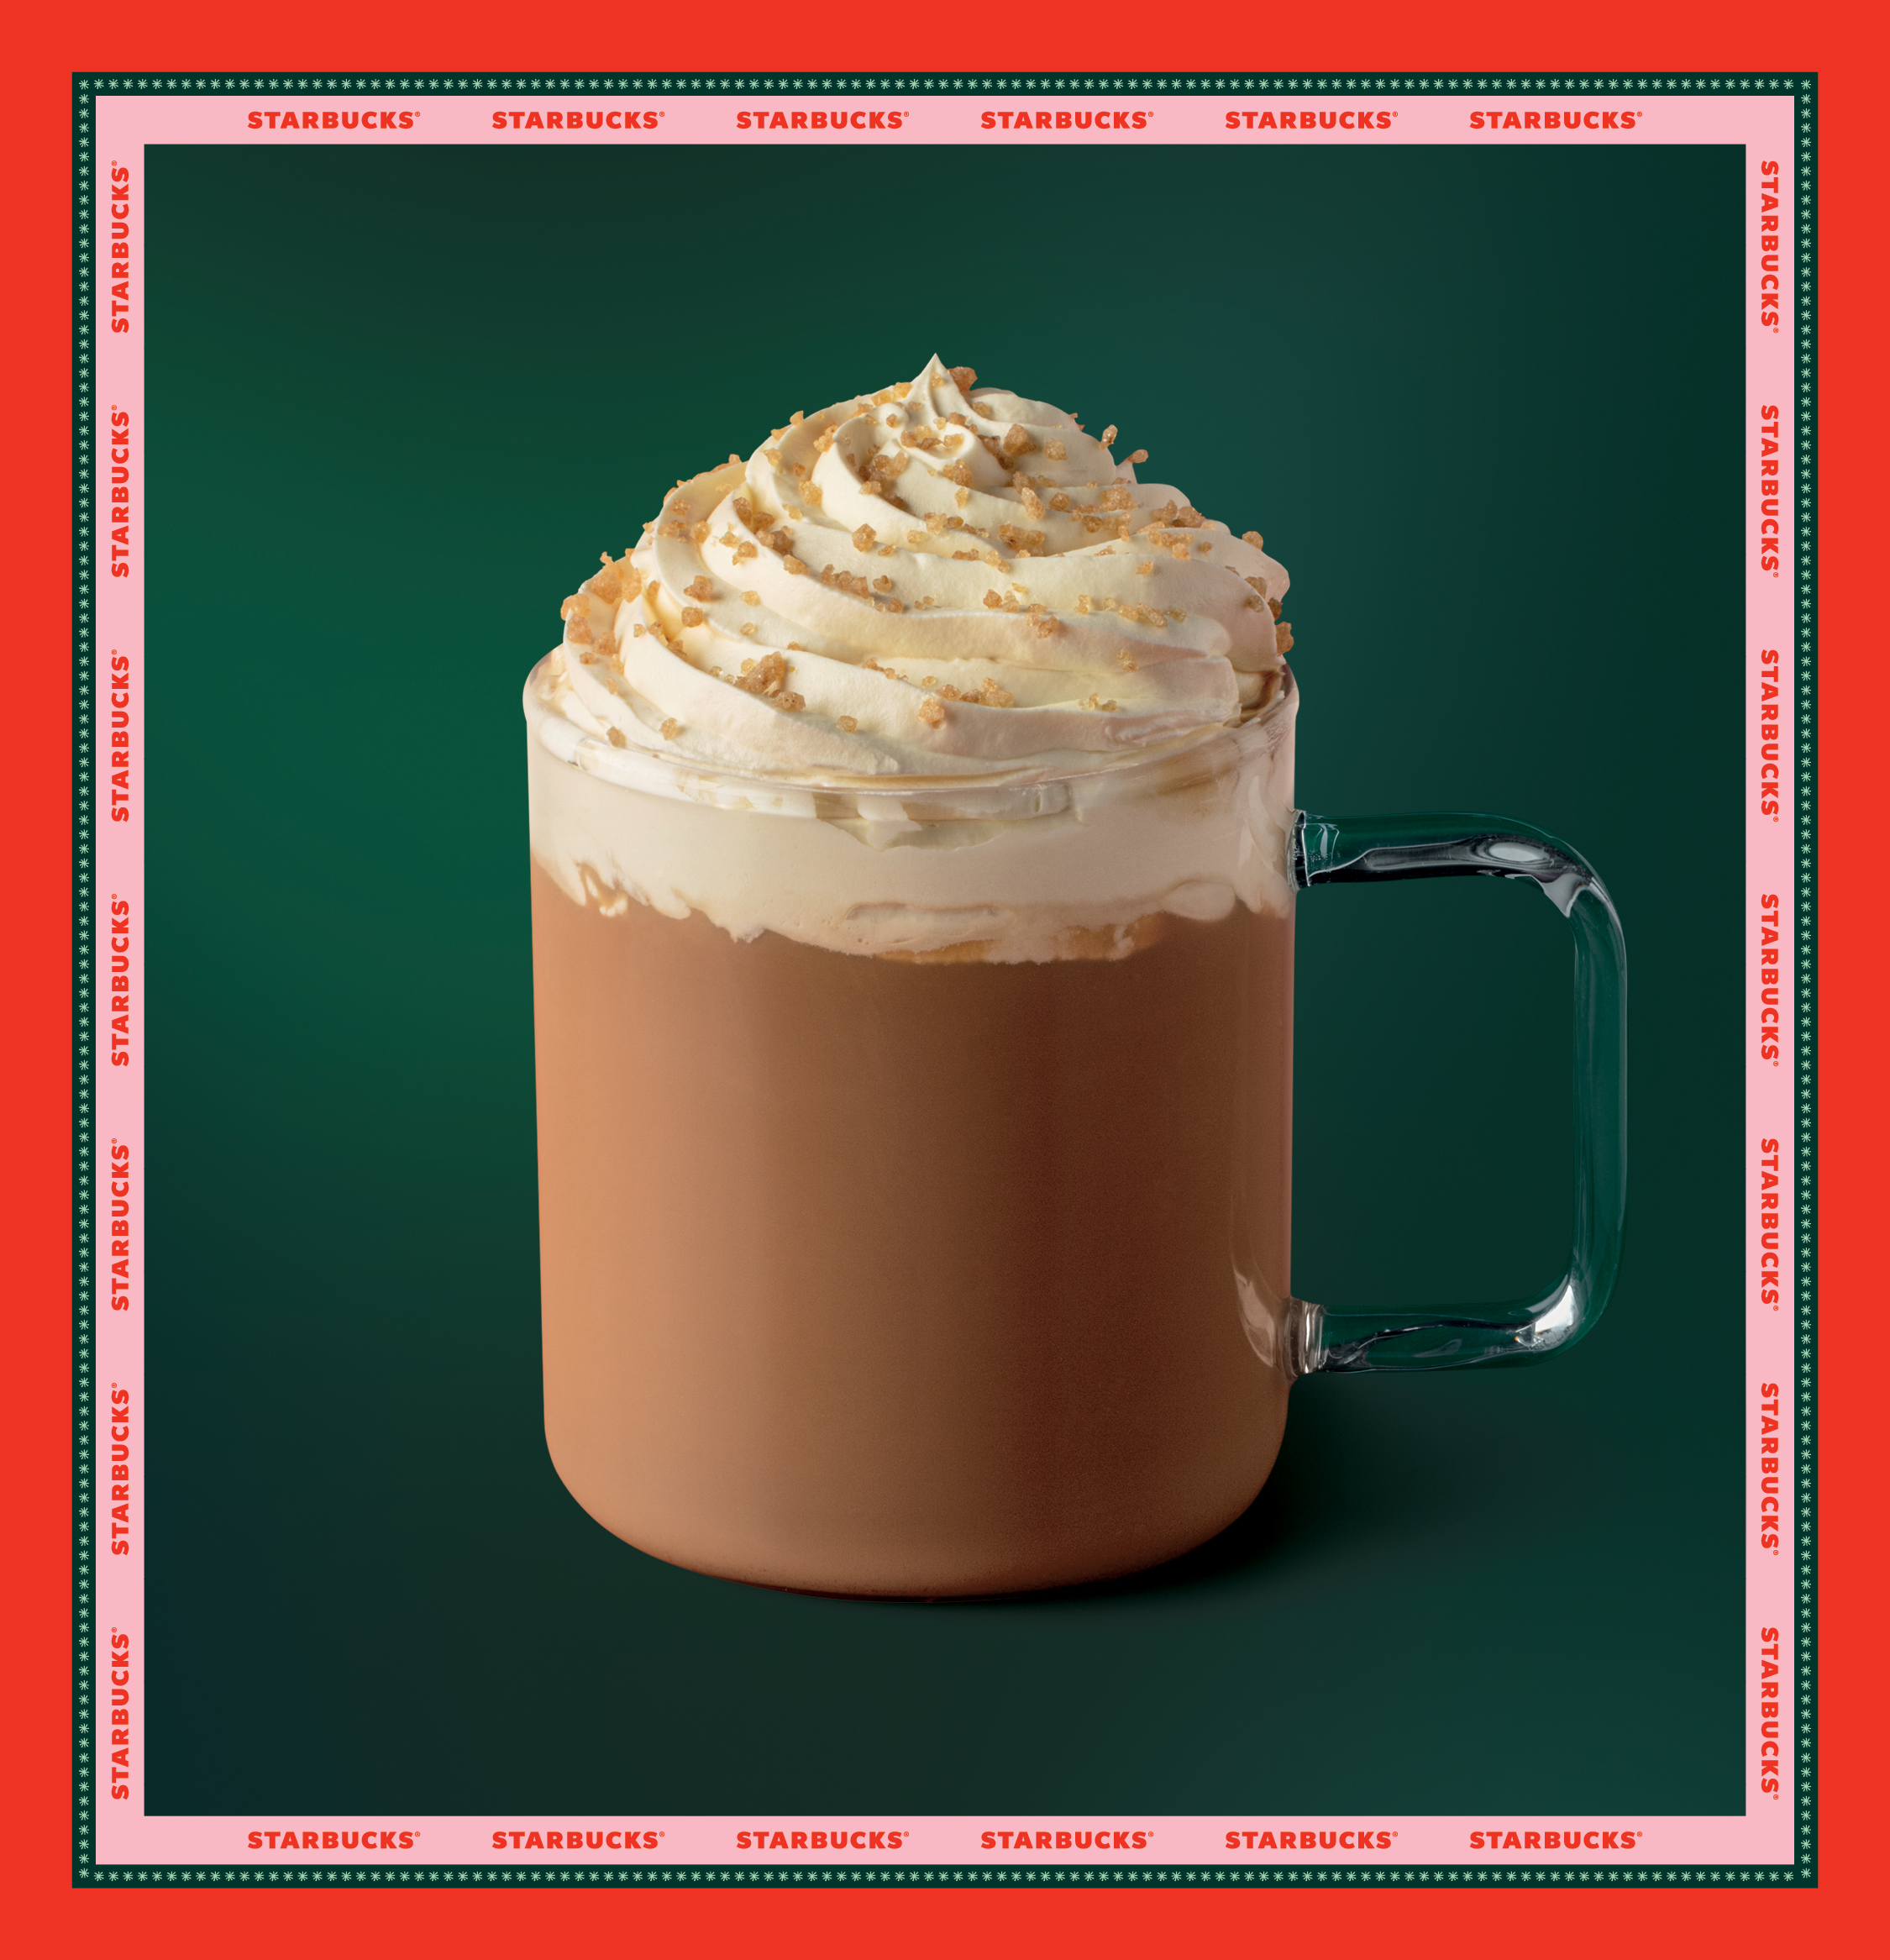 Finally Starbucks Announces the Return of the Holiday Favourite, Toffee Nut Latte!